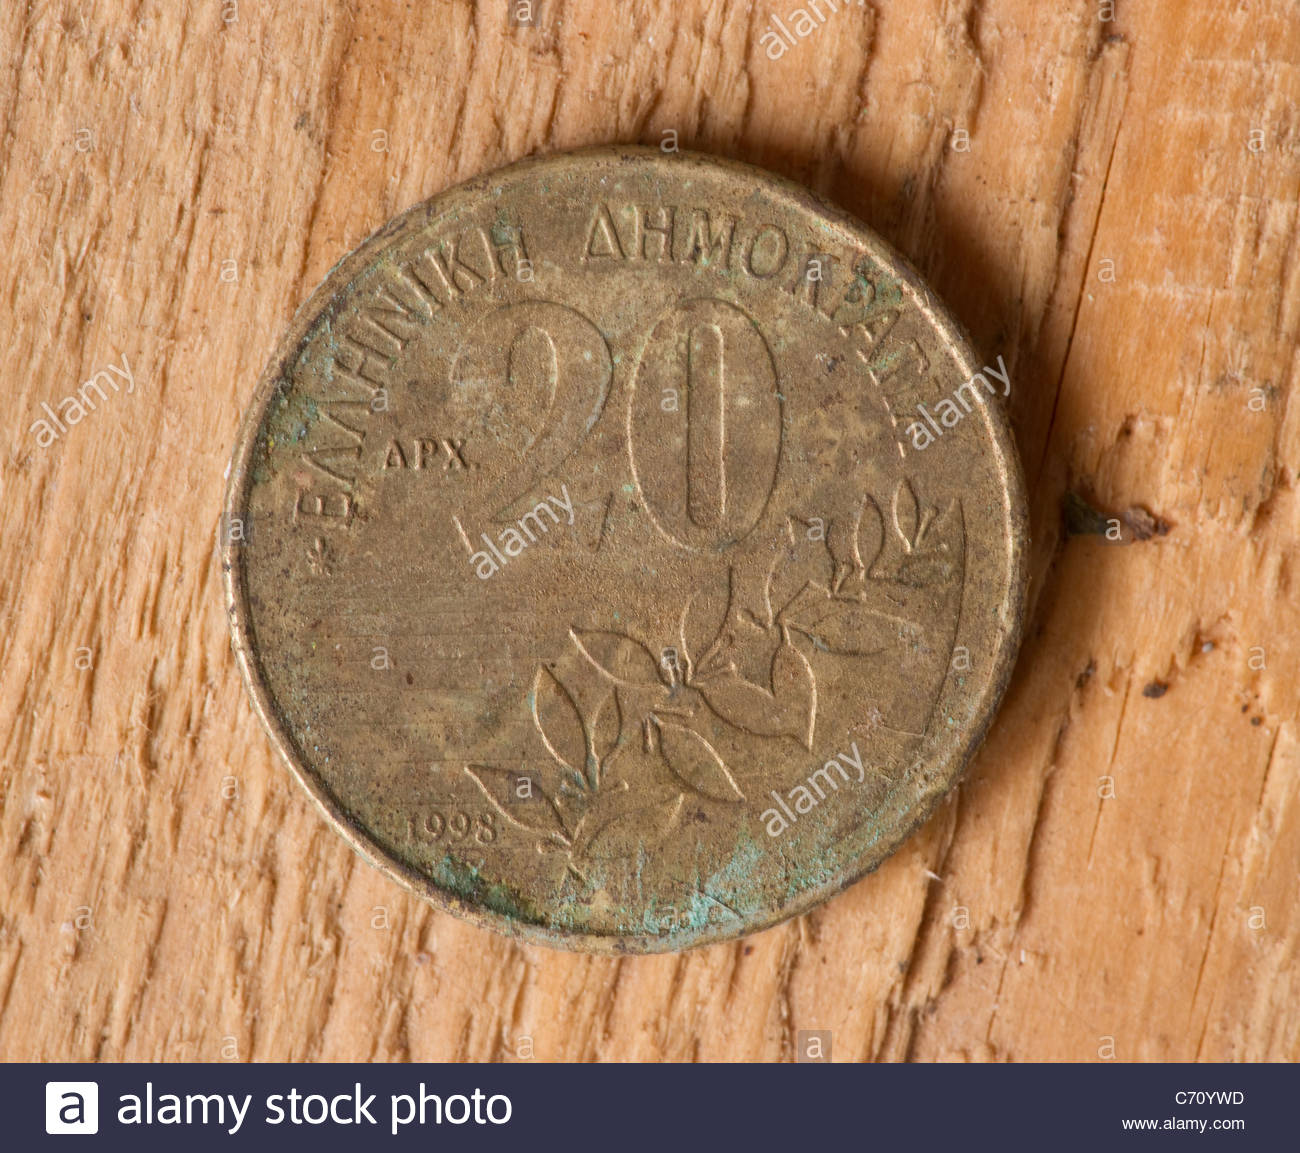 Old Greek money Drachma coin Greece - Stock Image